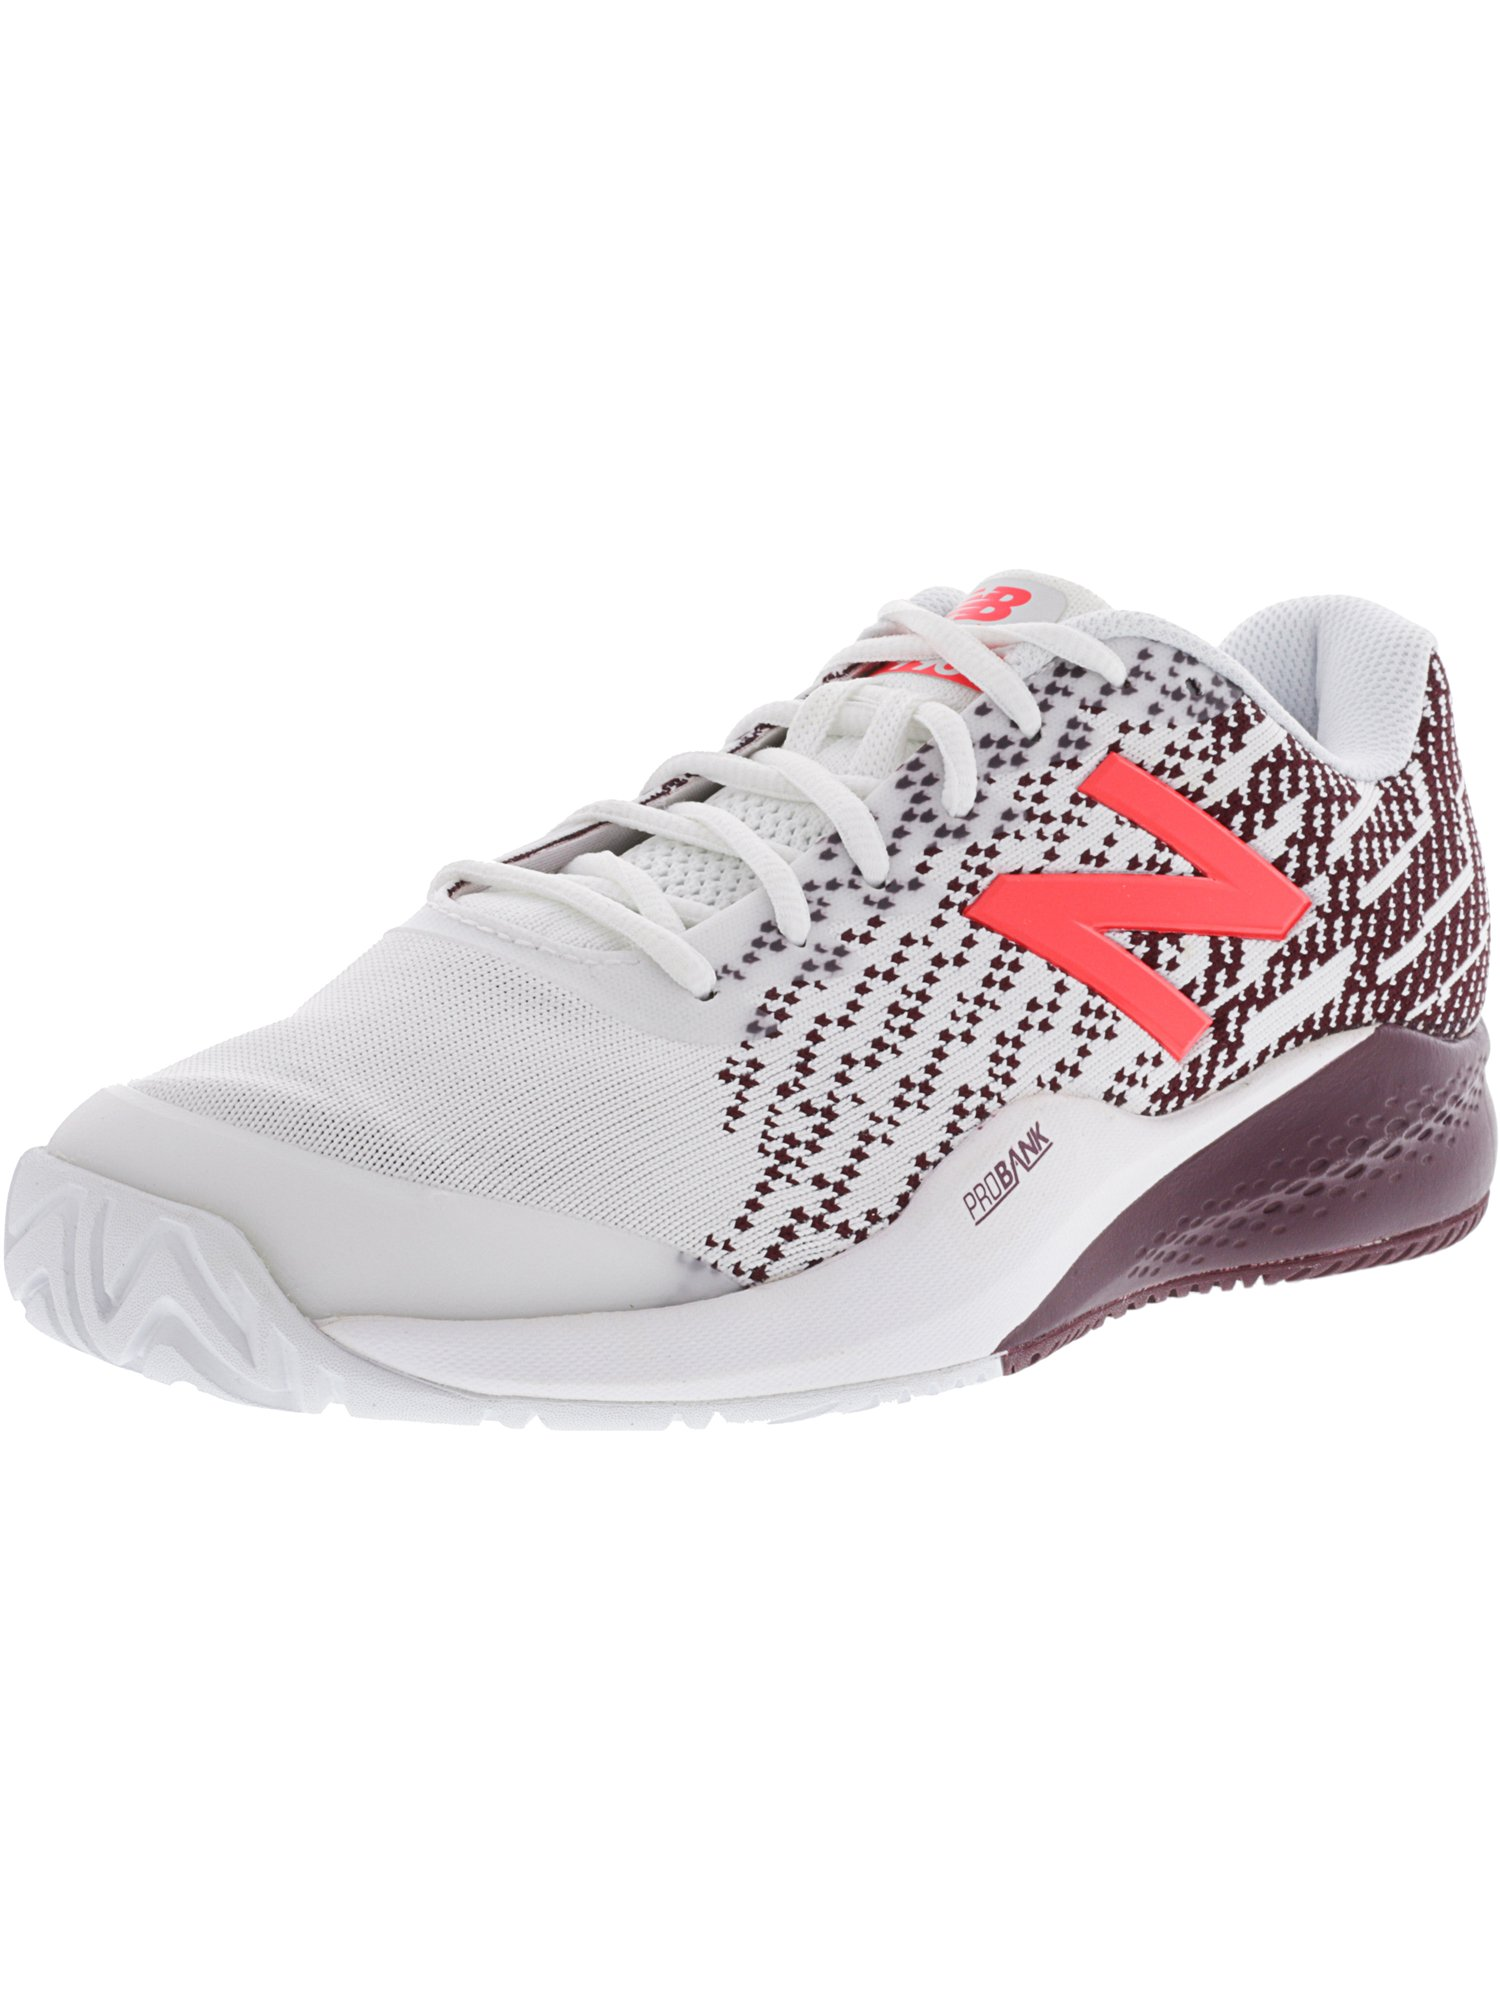 New Balance Women's Wch996 C3 Ankle-High Fabric Tennis Shoe - 10.5WW